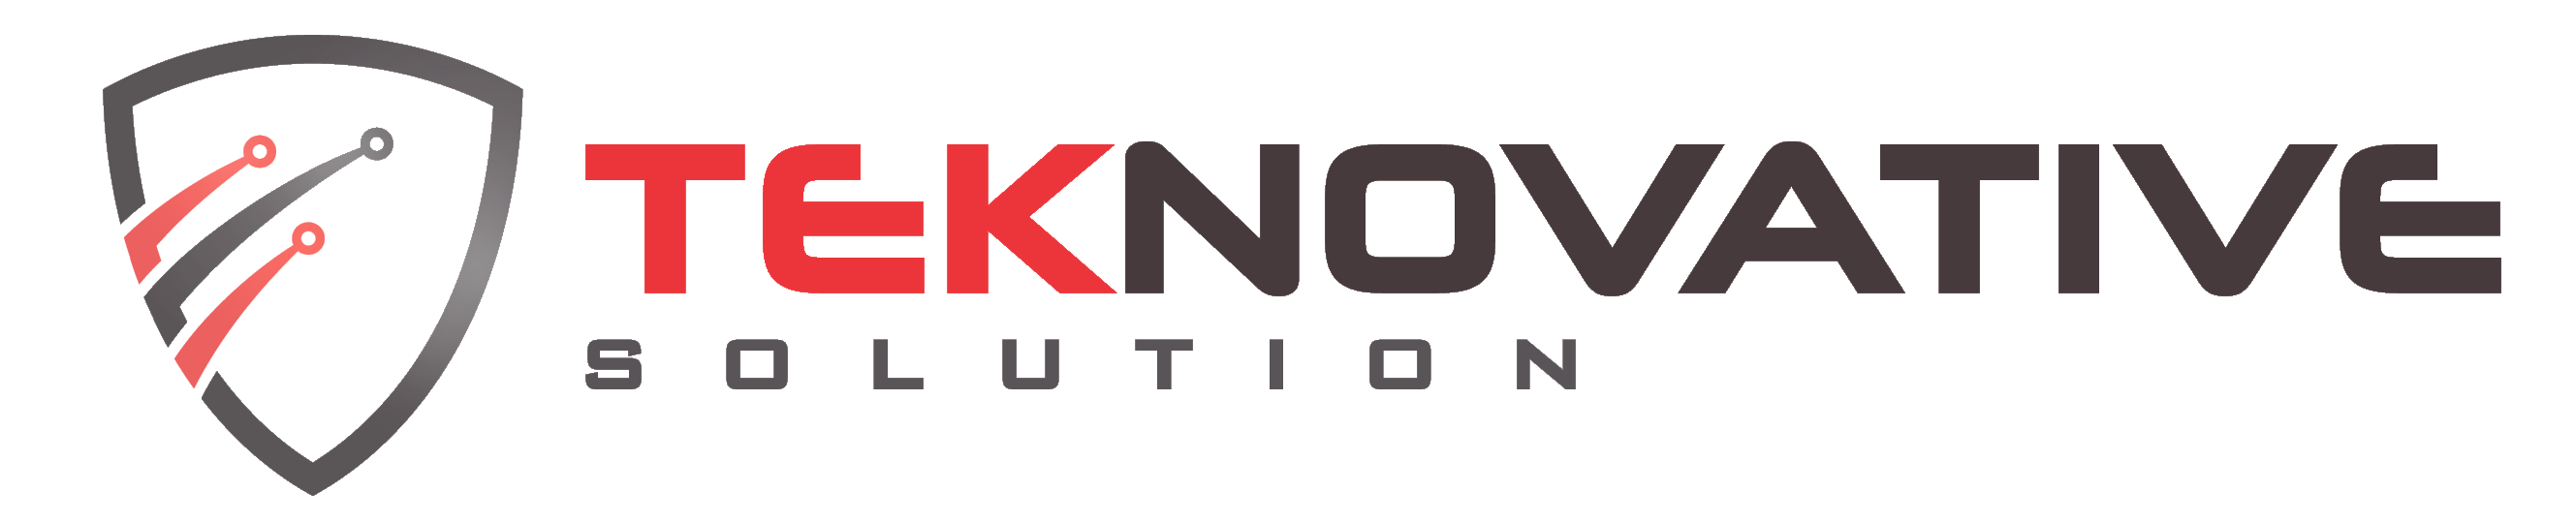 Logo of Teknovative Solution